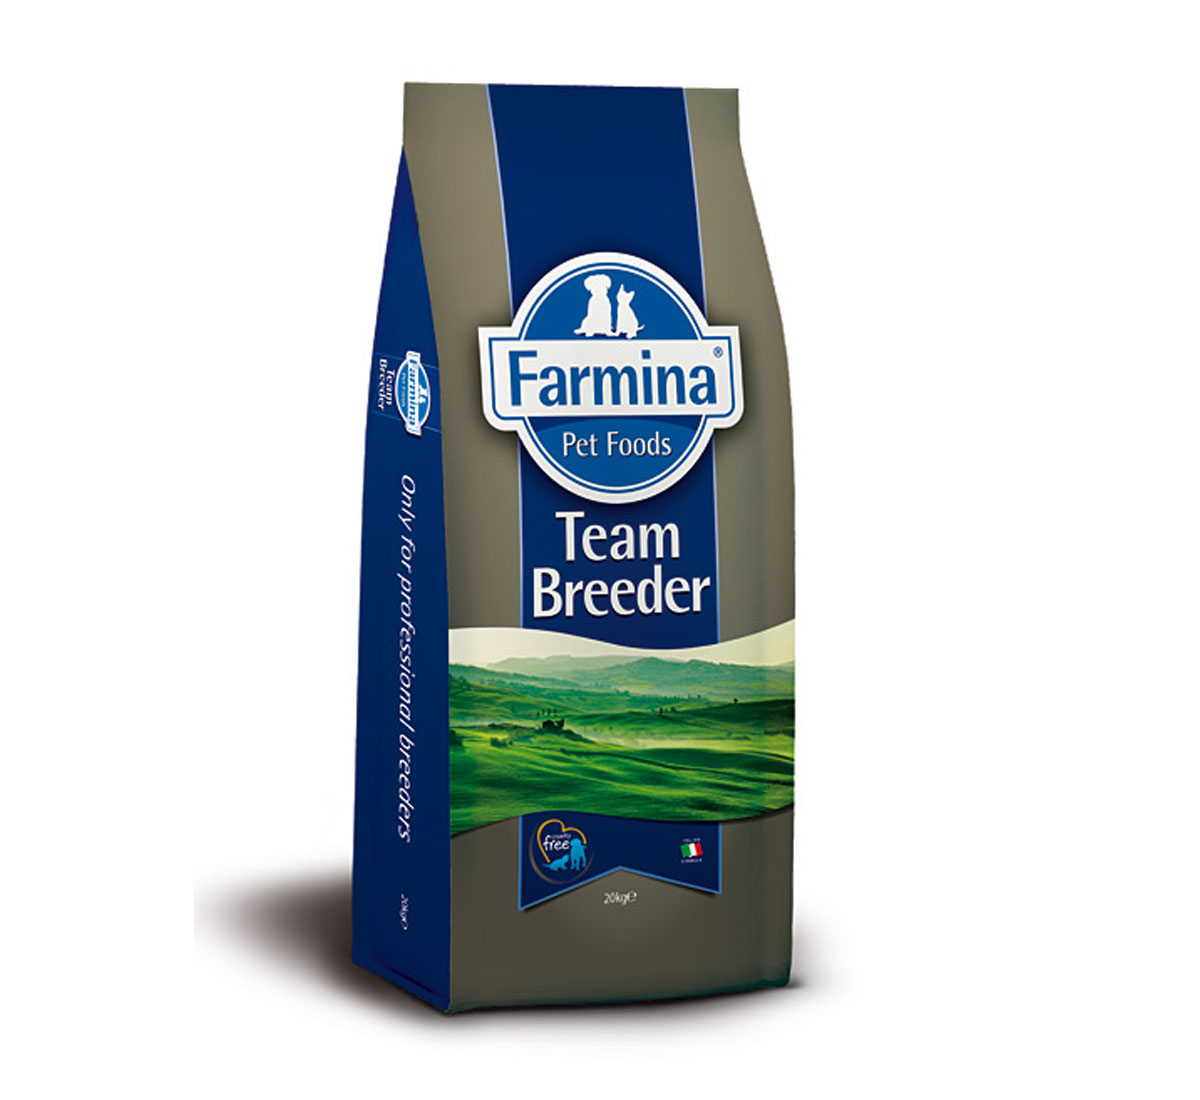 Farmina Team Breeder Grain Free Top Puppy Chicken - 20 Kg